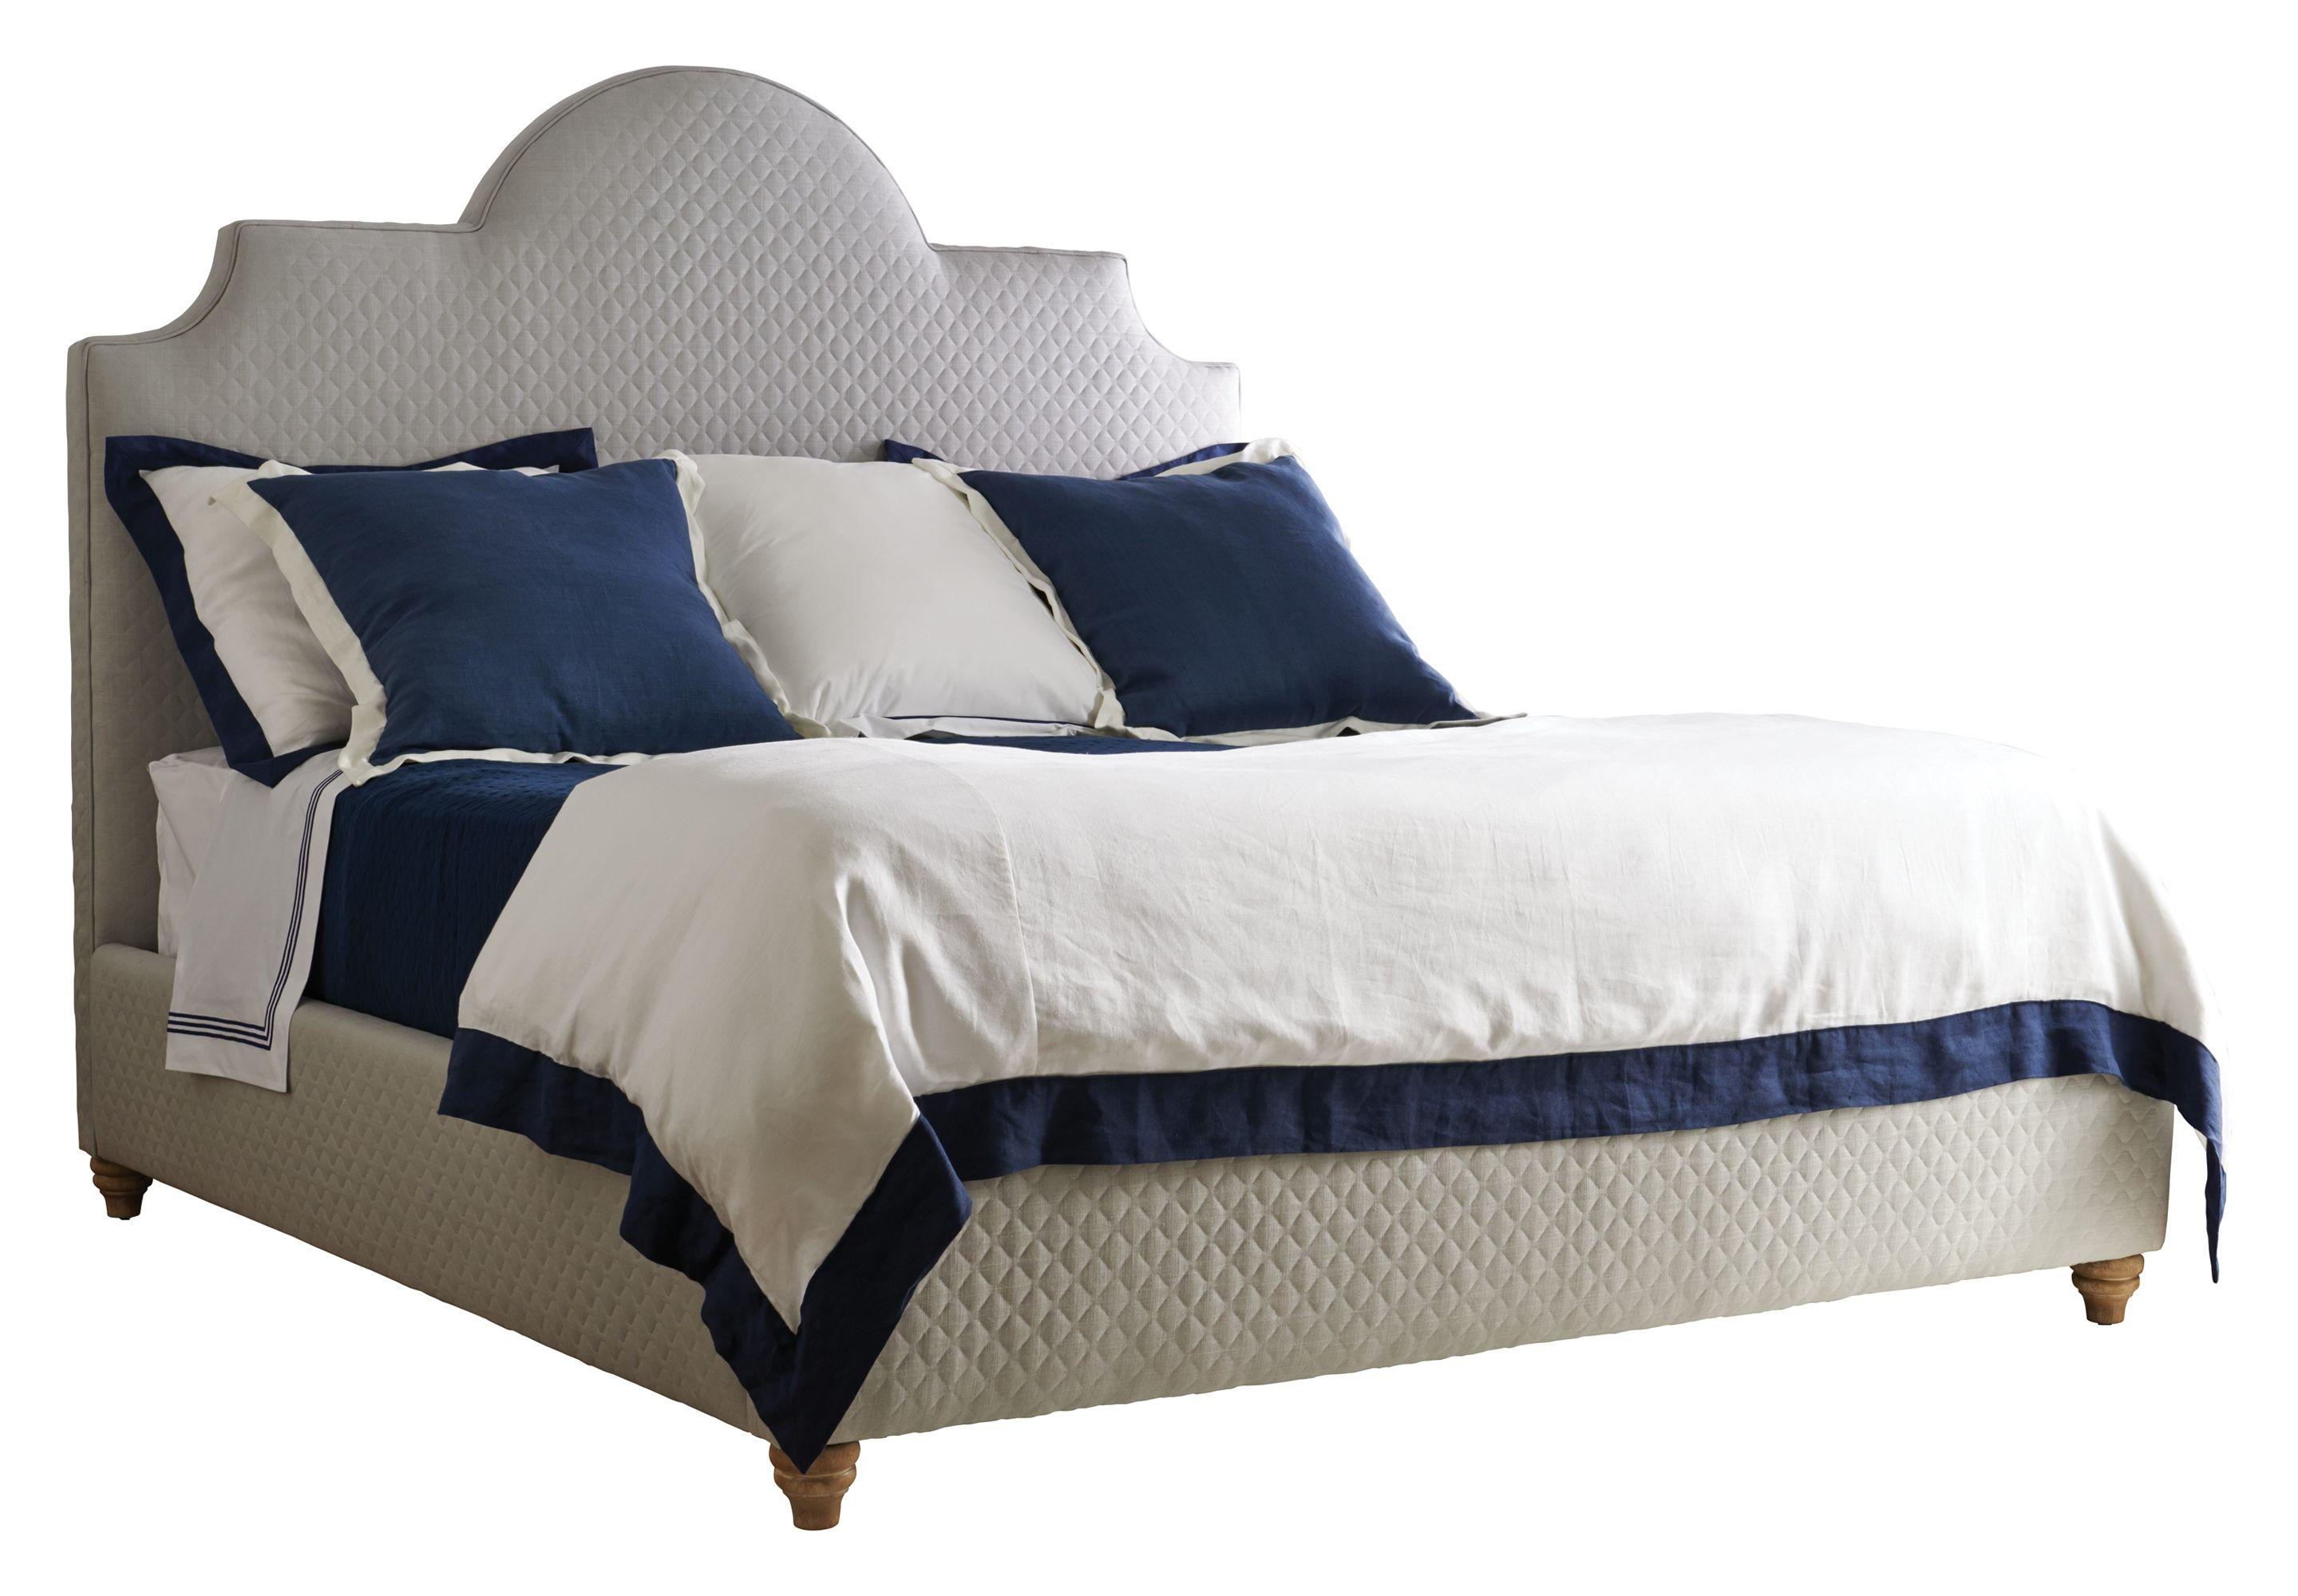 Stanley Furniture Coastal Living Retreat California King Breach Inlet Bed - Item Number: 411-C3-54